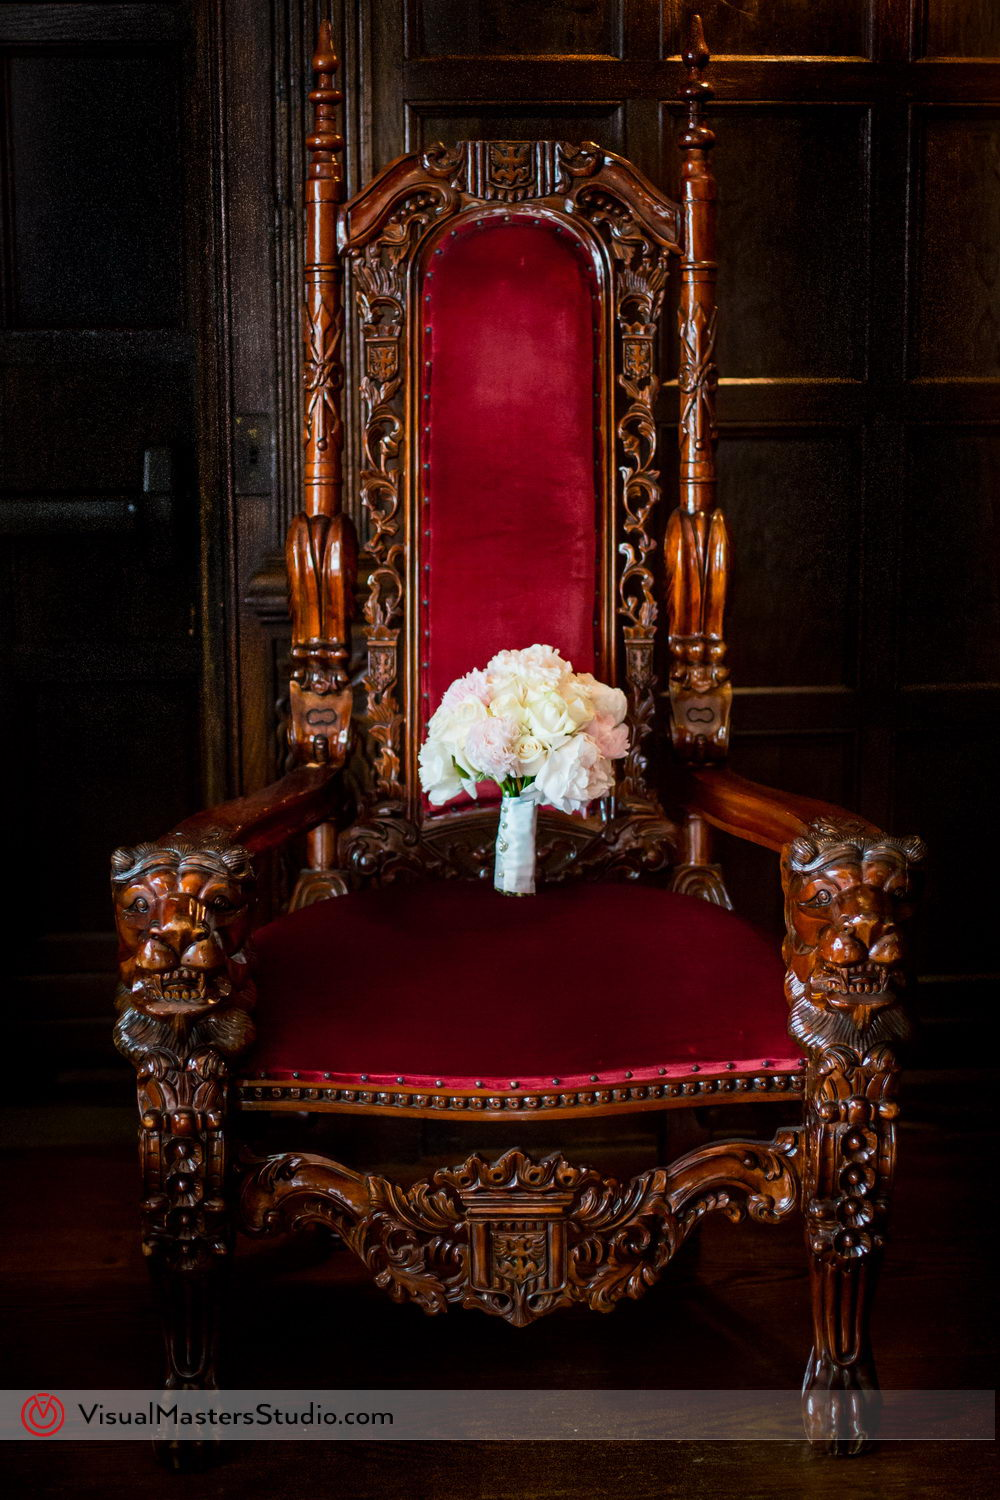 Elegant Bridal Bouquet Resting on the Throne at Skylands Manor by Visual Masters